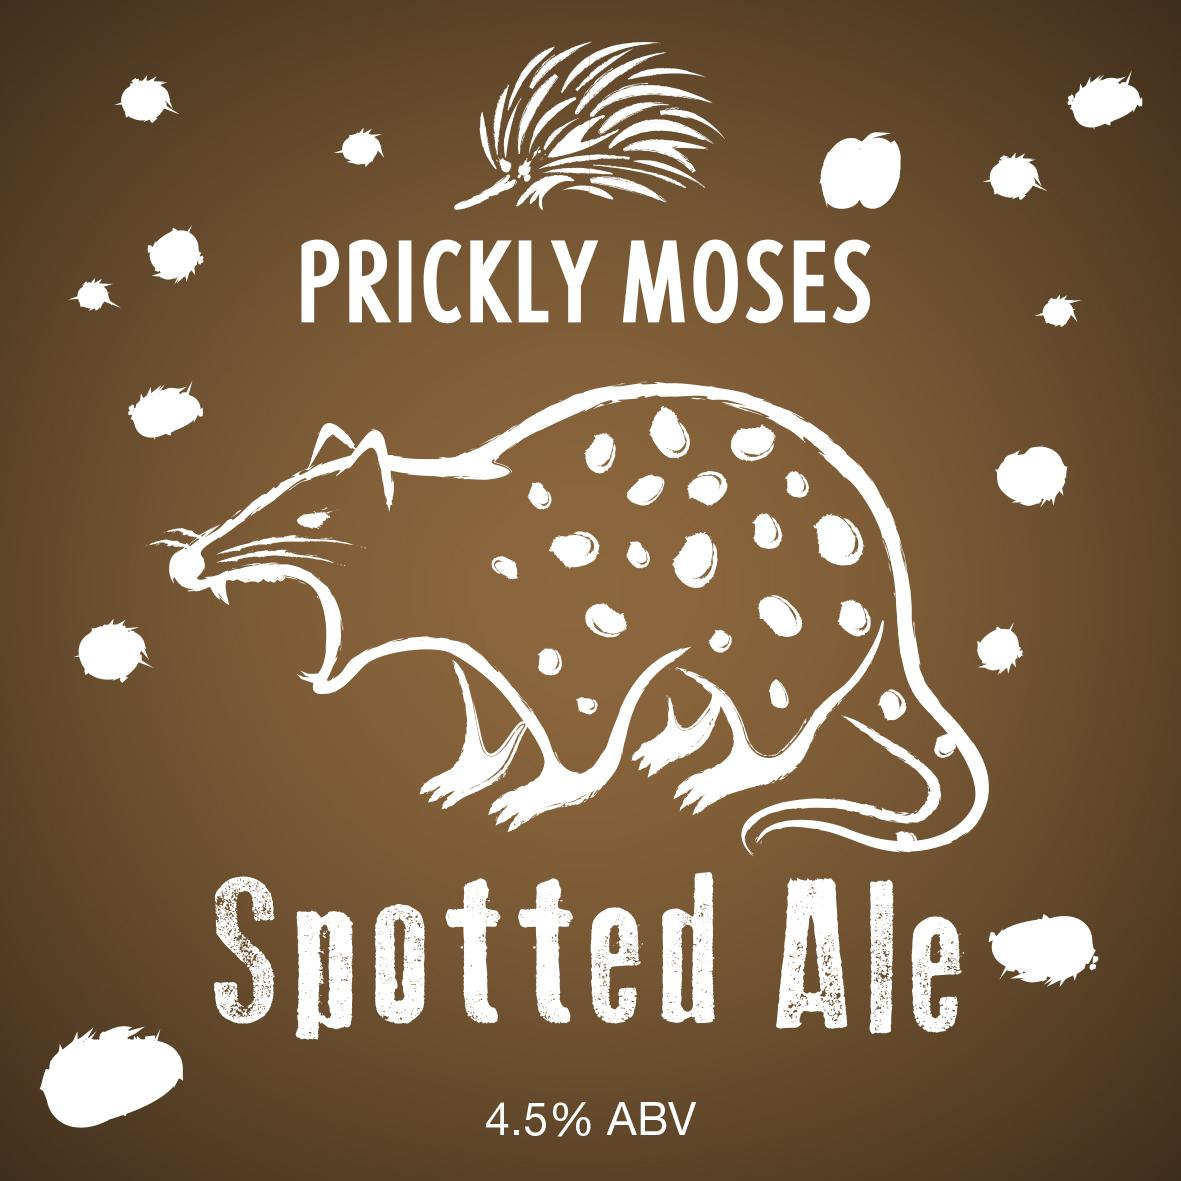 prickly moses spotted ale